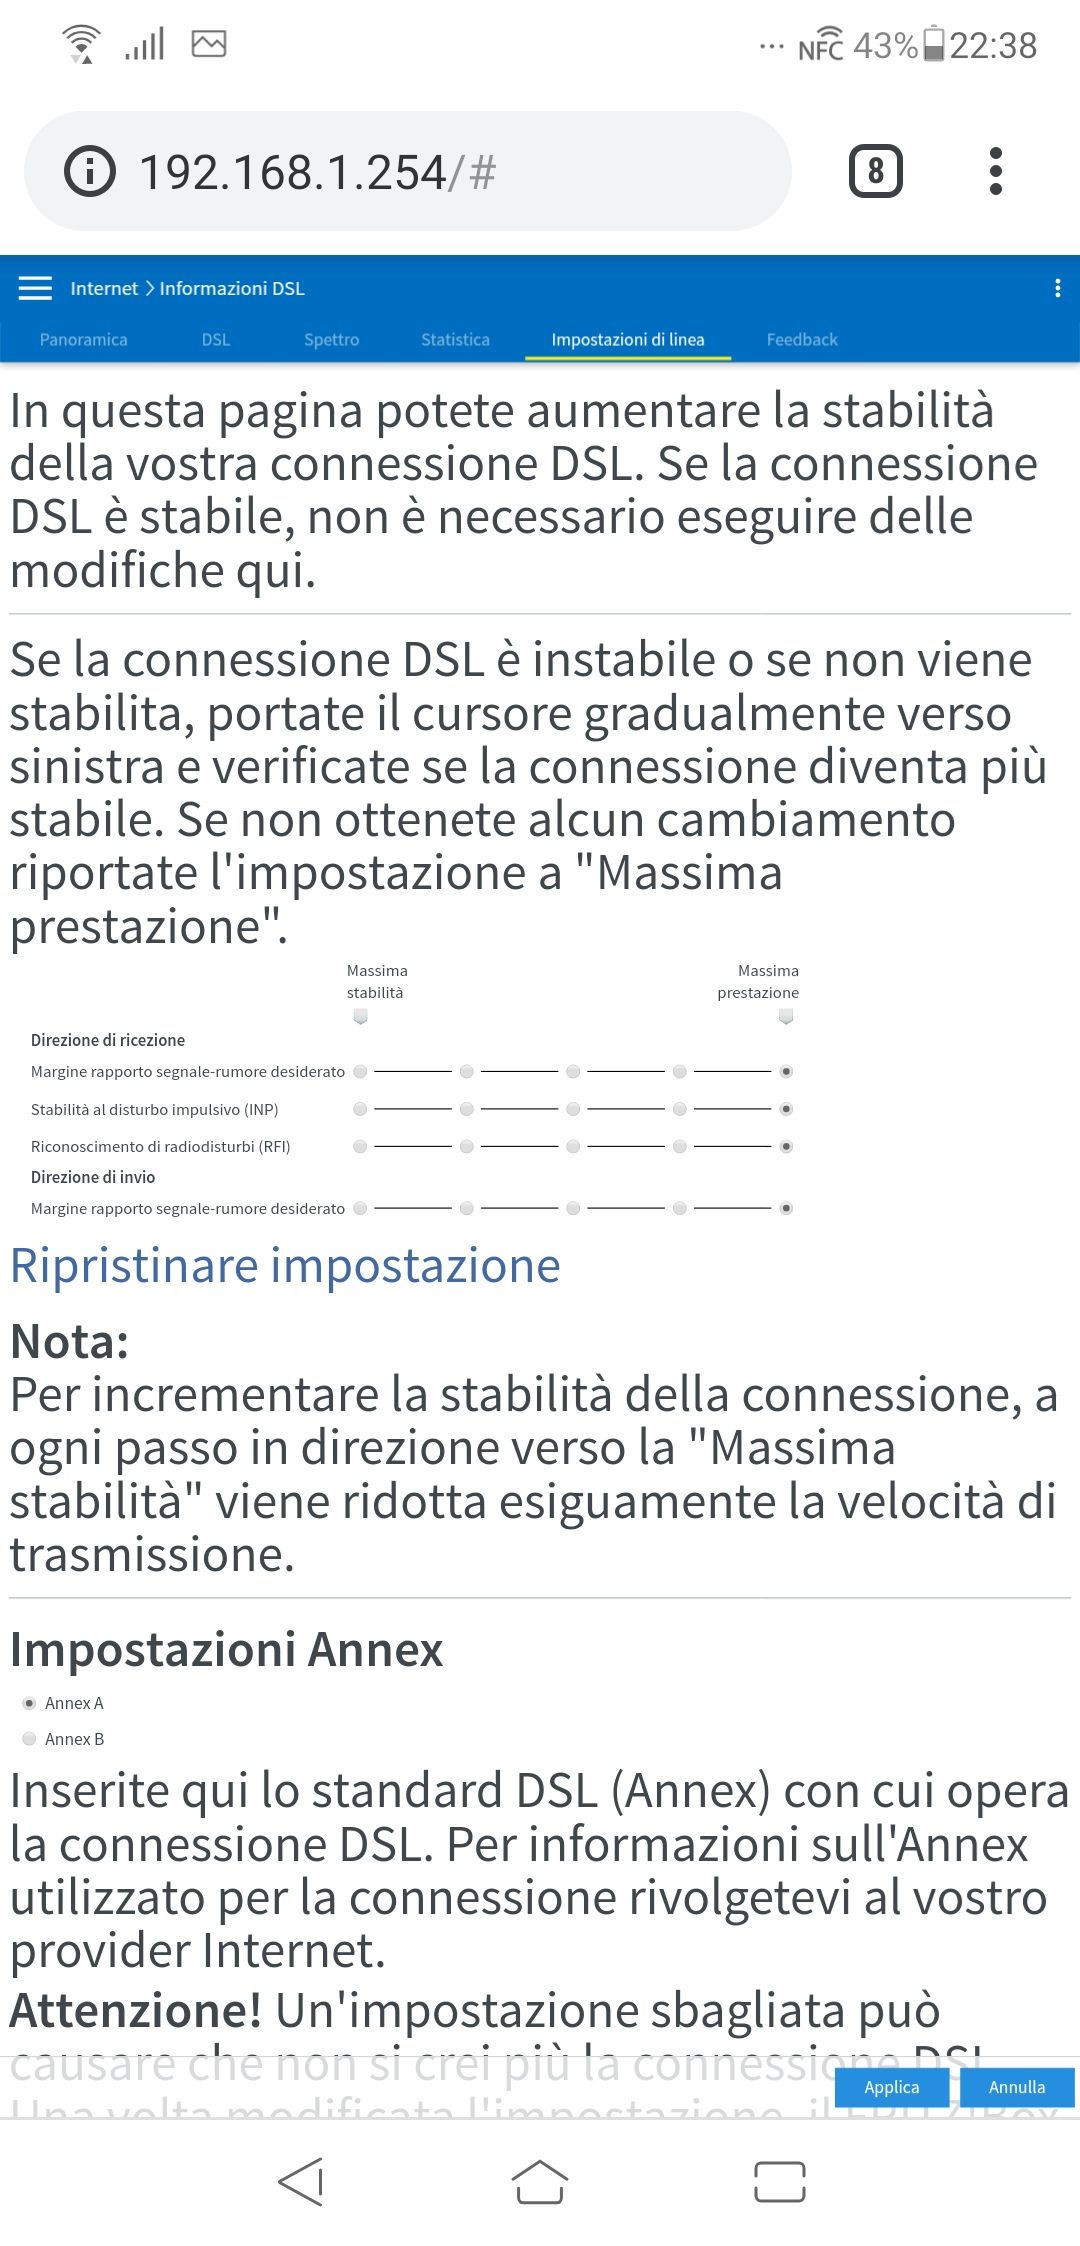 Timeout dell'autenticazione PPP con Tiscali Fttc Screen16